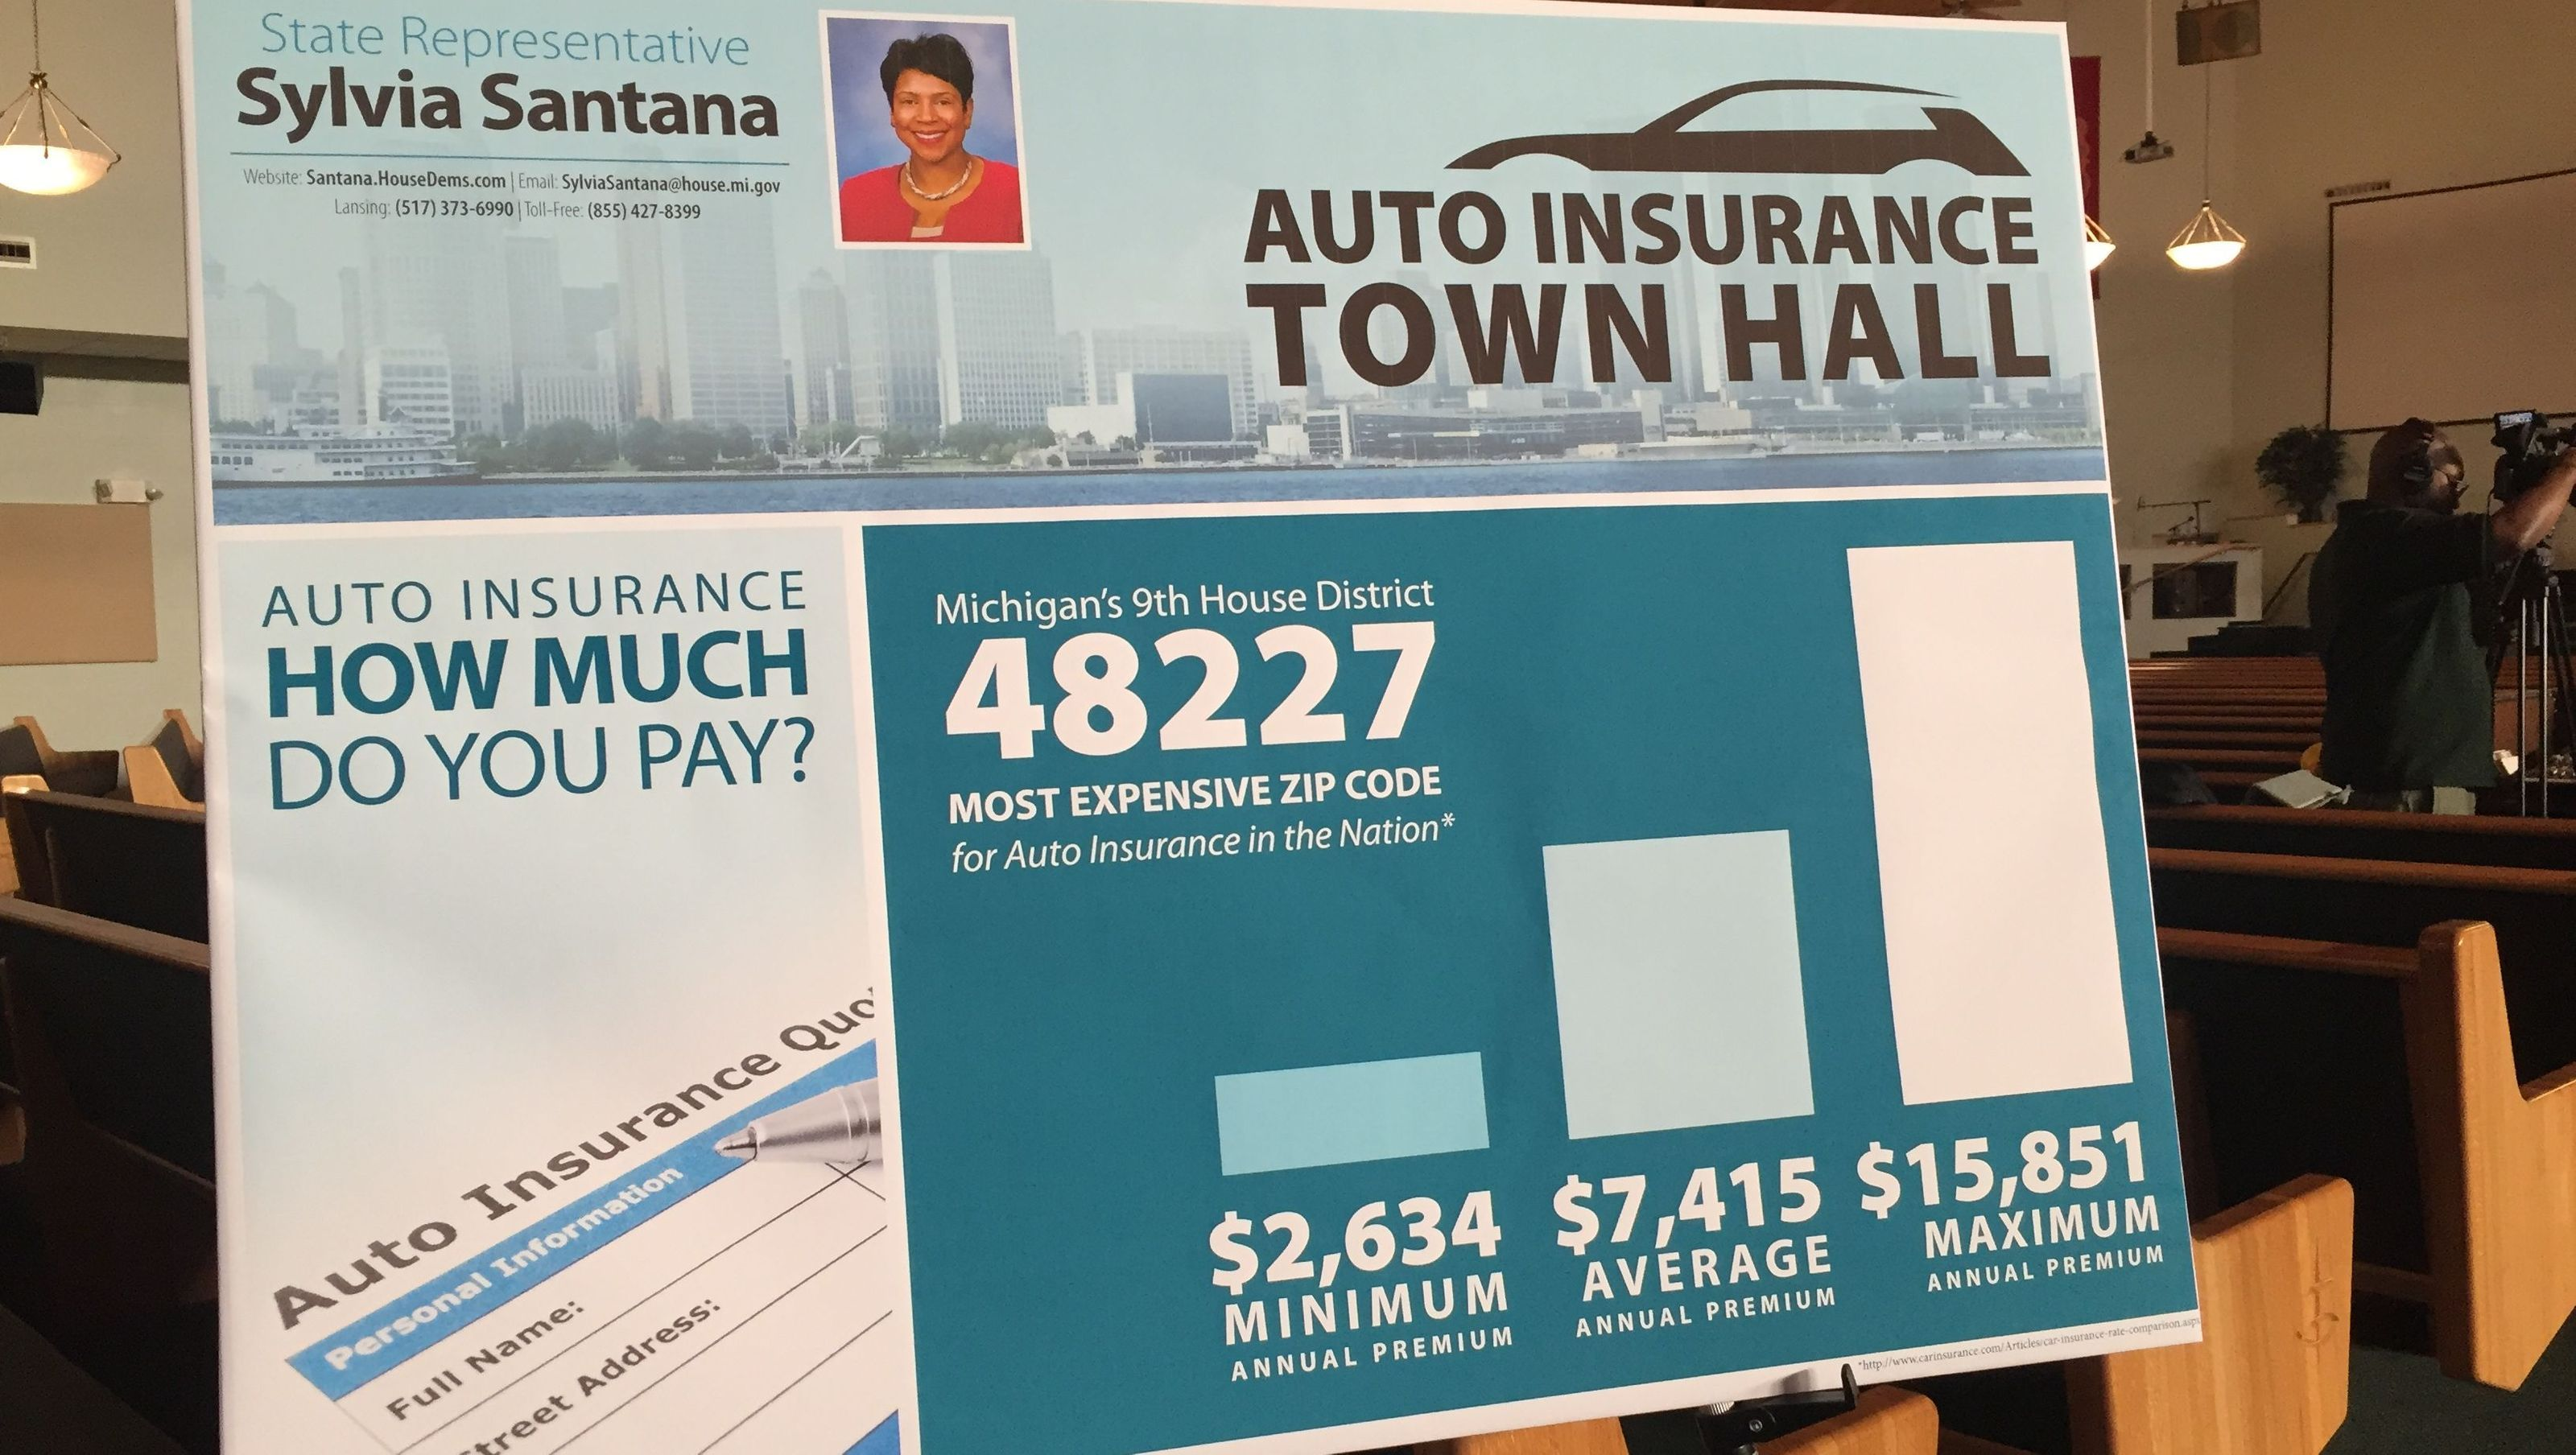 To Get Estimated Car Insurance Costs Right Now For Your Zip Code